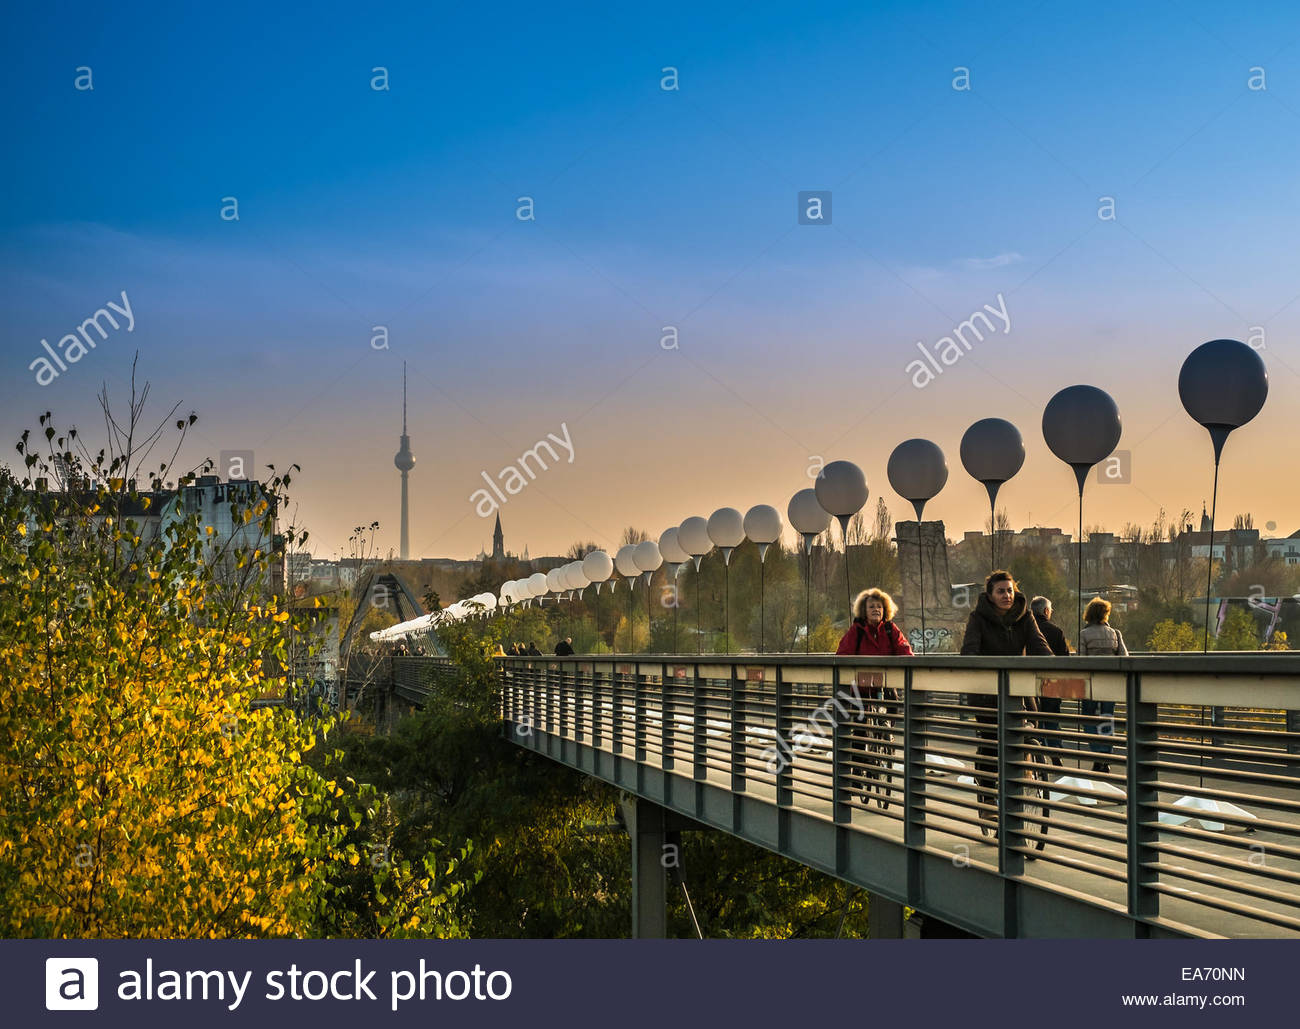 Berlin, Germany - 25 Years Fall of the Berlin Wall celebration - the light border - November 7th 2014 Stock Photo